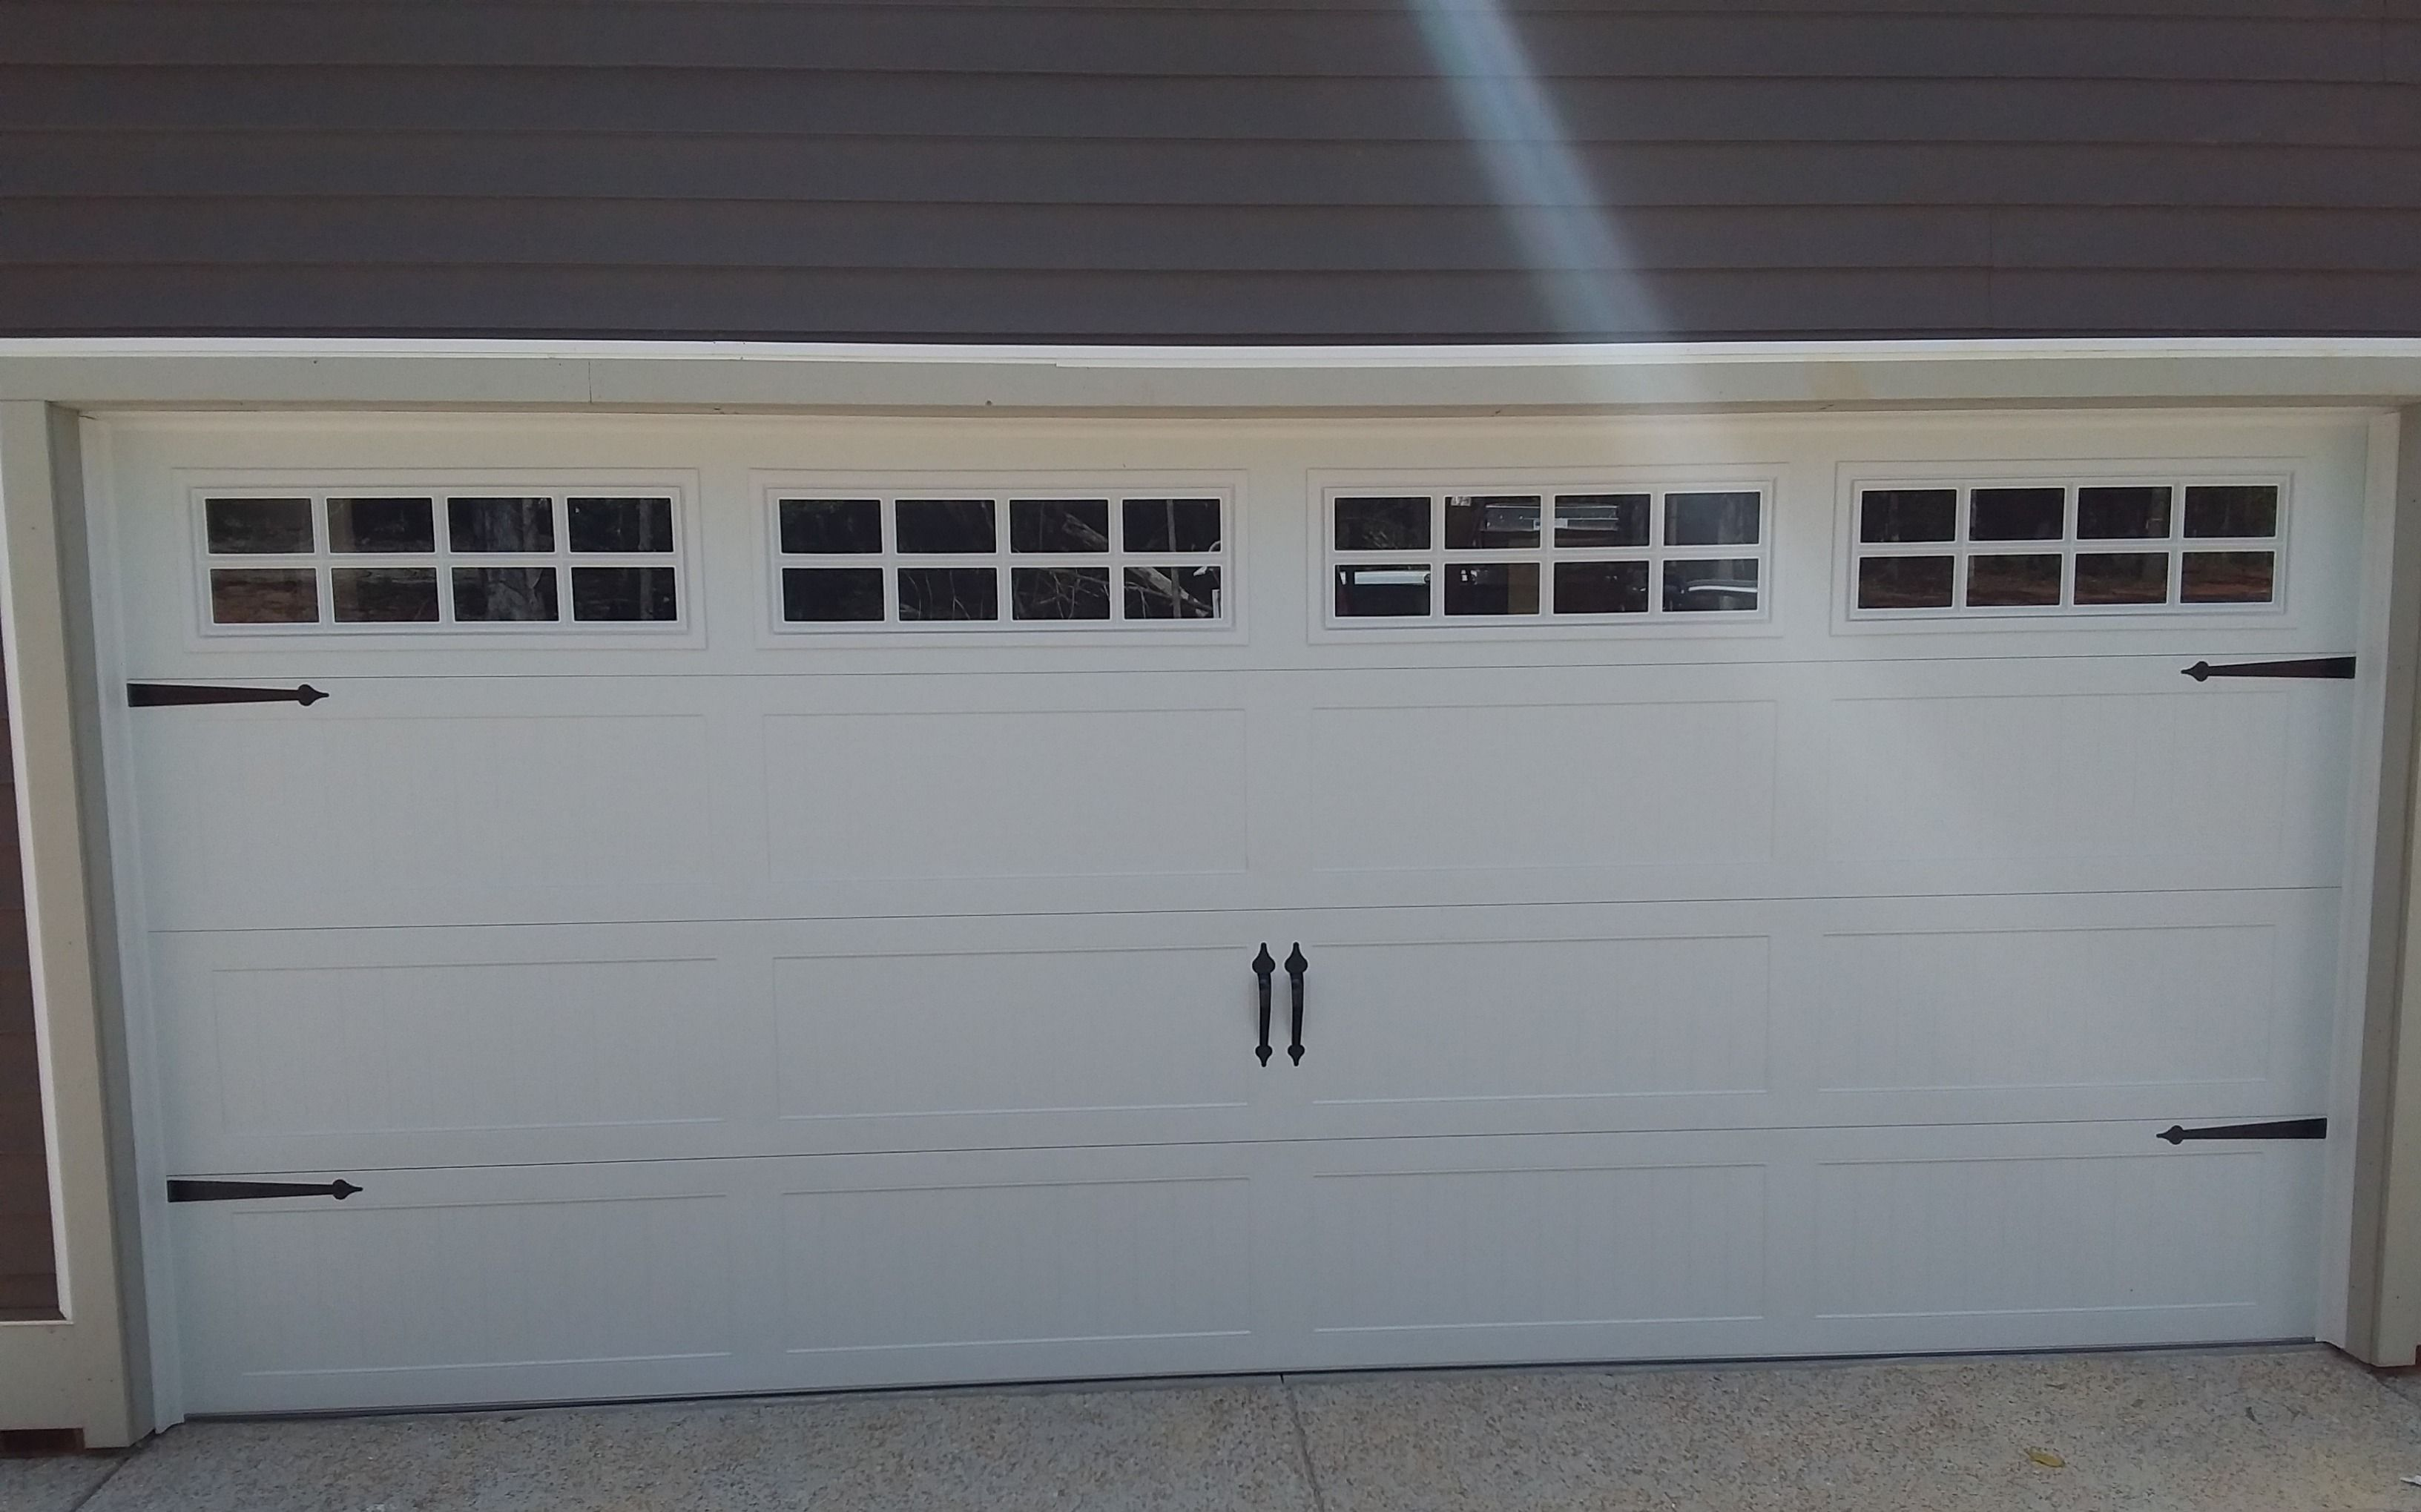 16x7 Model 5951 Carriage Style Garage Door With Top Stockton Glass Installed By The Richmond Store Teamappled Garage Doors Carriage Style Garage Doors Doors